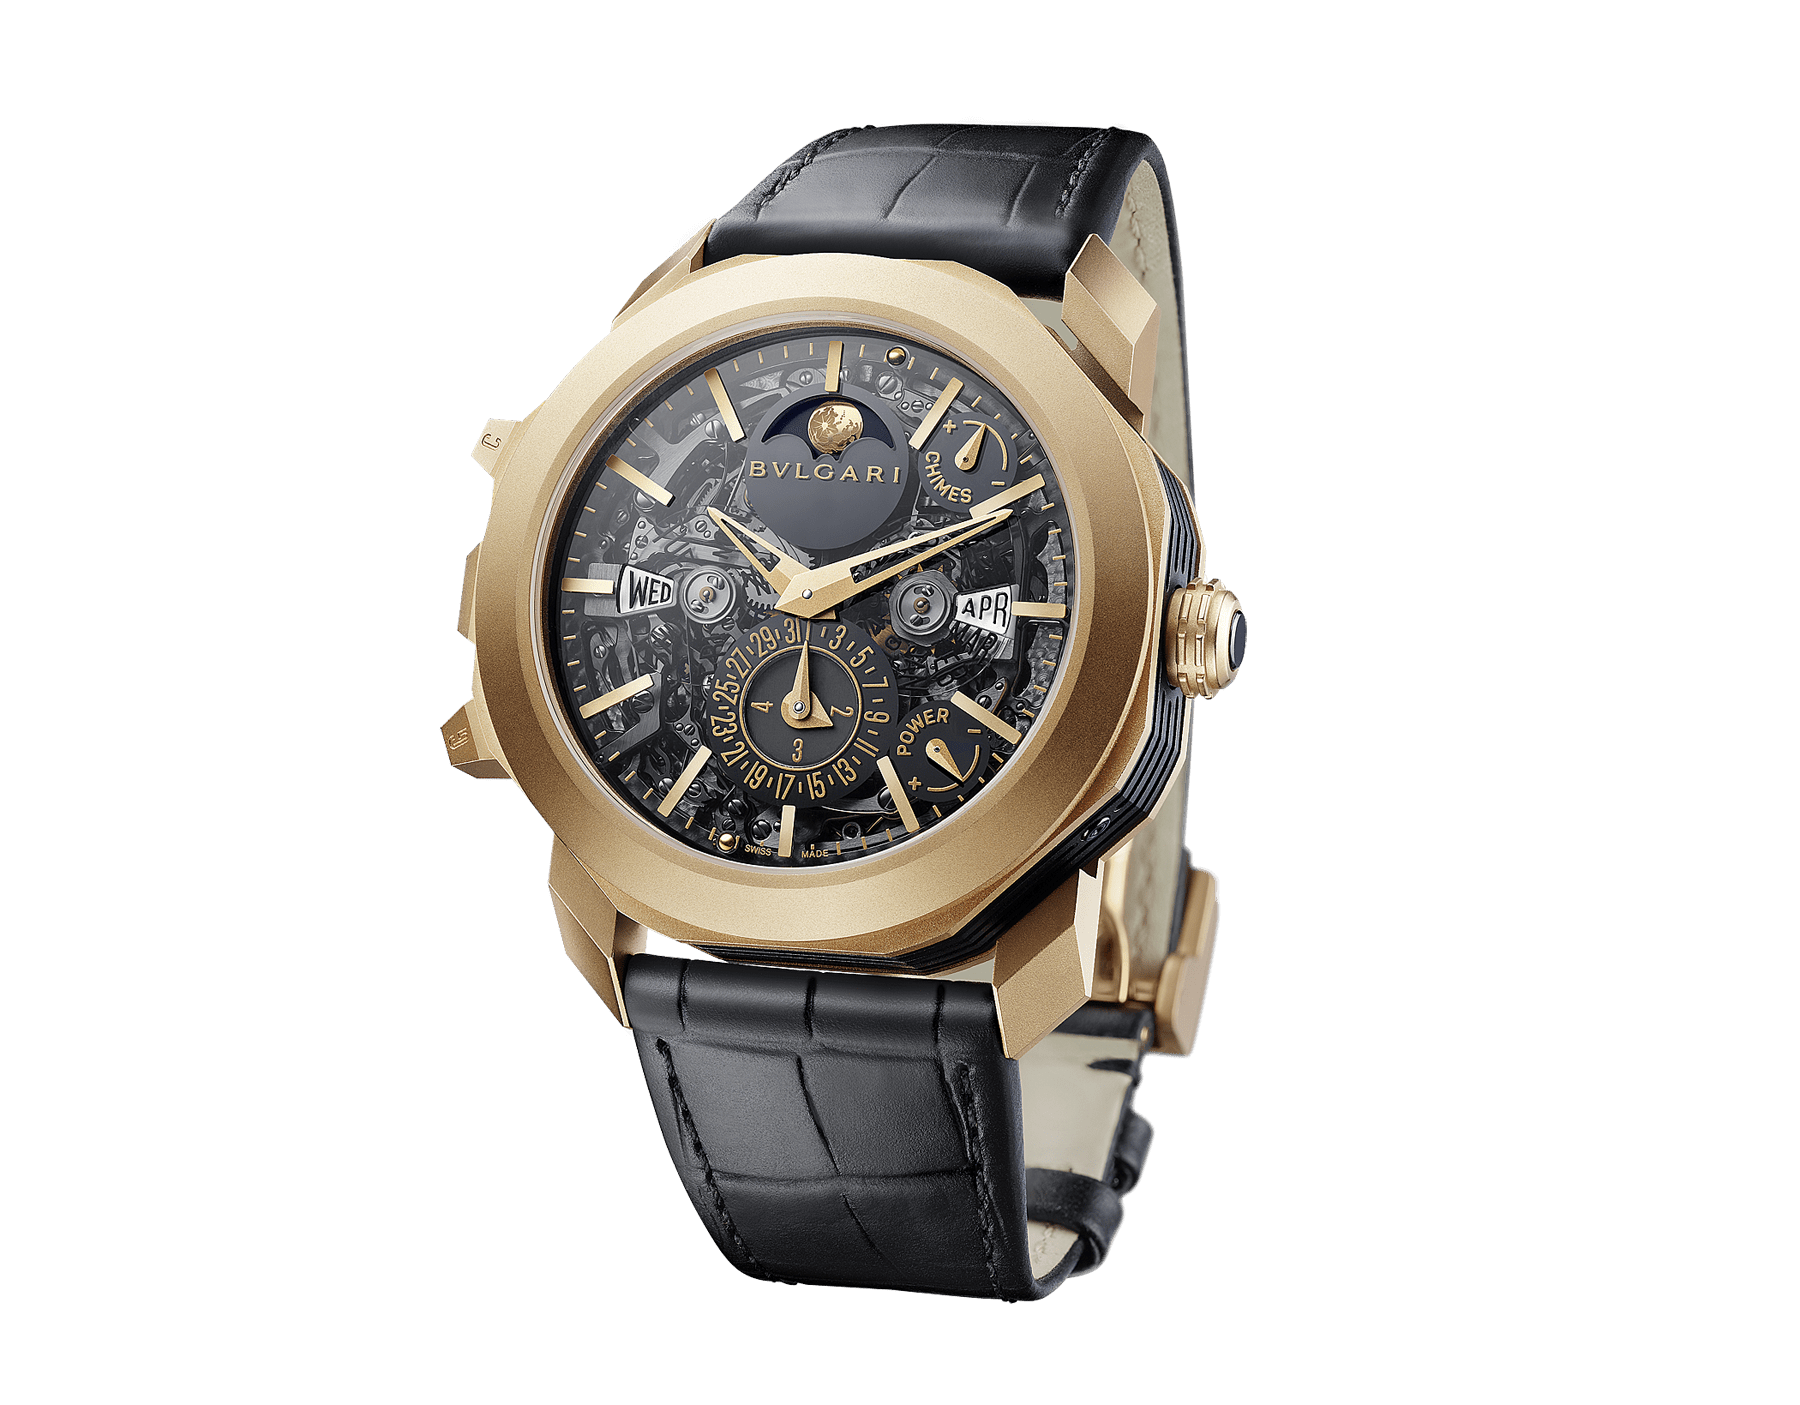 Octo Grande Sonnerie watch with mechanical manufacture movement, Grande and Petite Sonnerie, minute repeater, tourbillon, perpetual calendar, moonphases, movement and chime power reserve indicator, 18 kt rose gold sandblasted case, skeletonized dial and black alligator bracelet 102891 image 2